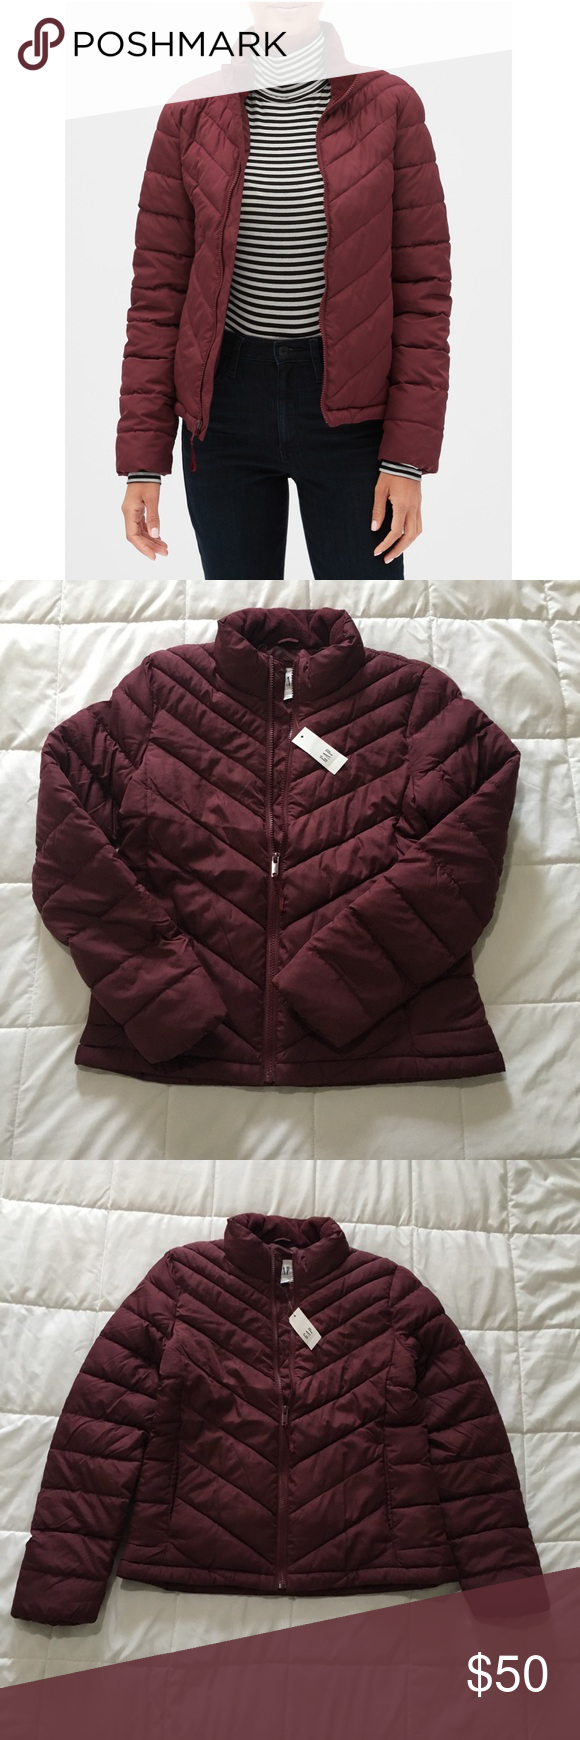 Gap Lightweight Puffer Jacket Dark Maroon Burgundy Straight Silhouette With A Slim Fit Hits At The Hip Smooth Quilted W Clothes Design Jackets Gap Jacket [ 1740 x 580 Pixel ]